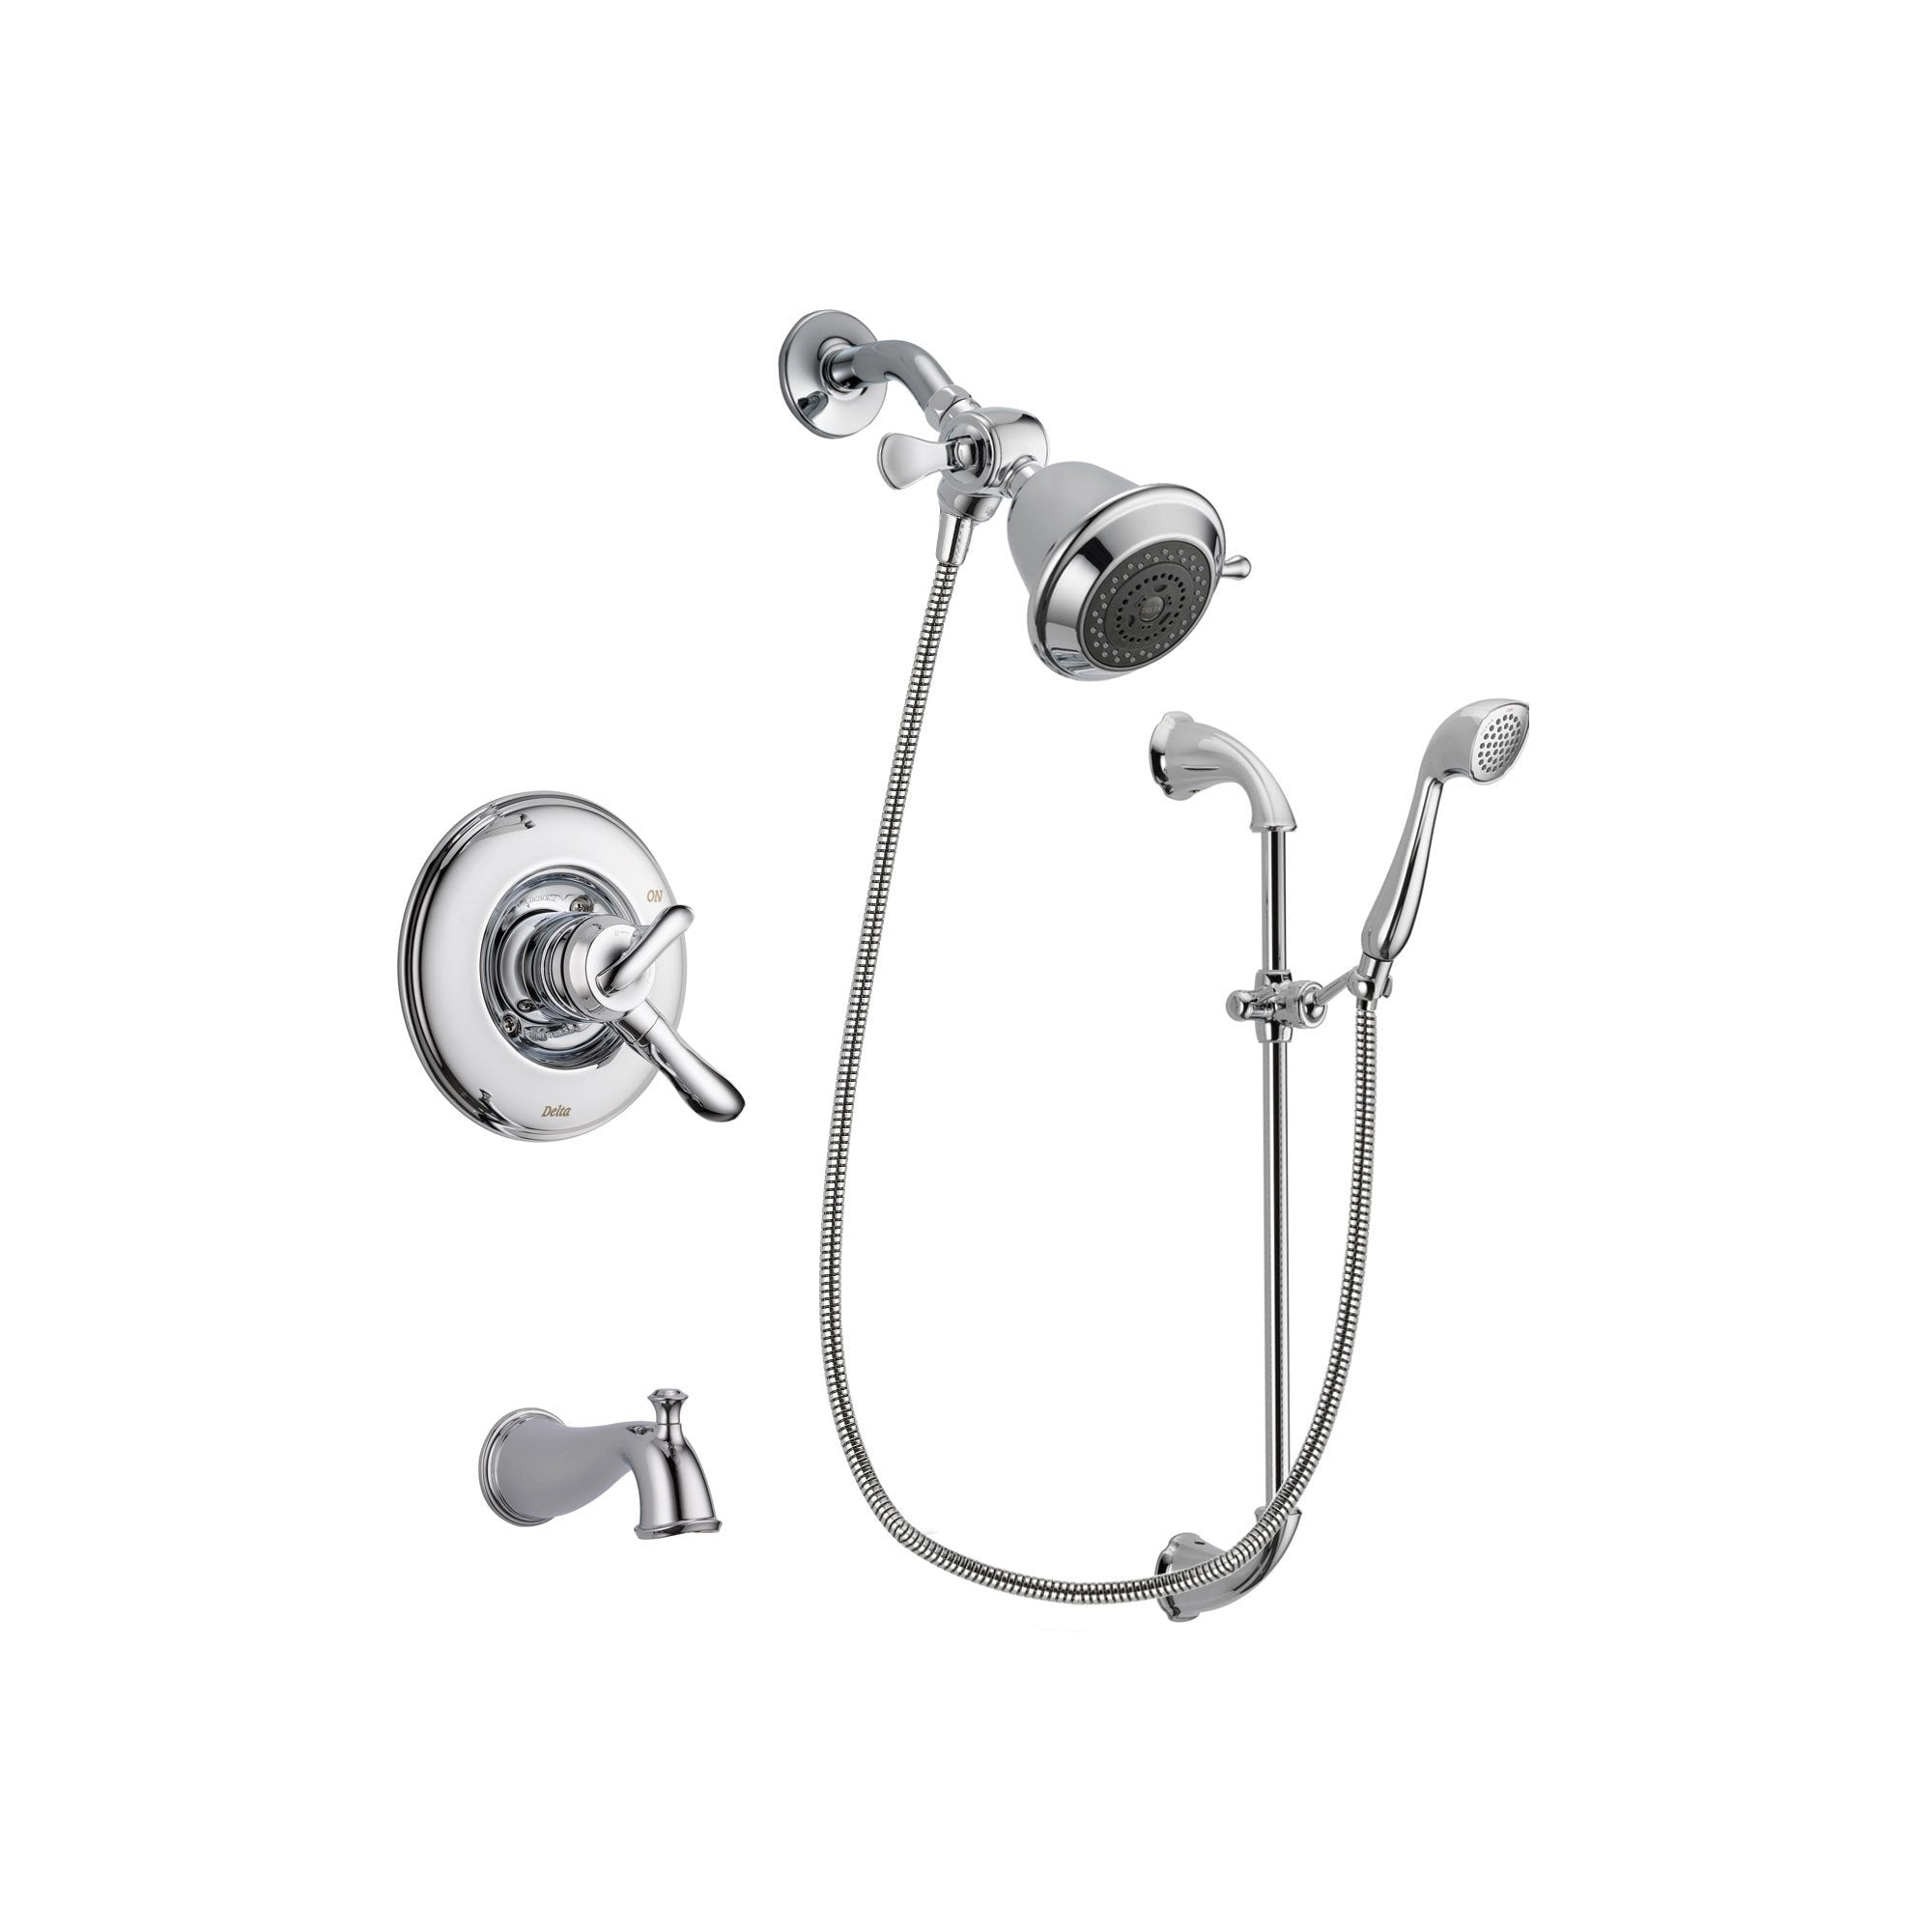 Delta Linden Chrome Finish Dual Control Tub And Shower Faucet System  Package With Shower Head And